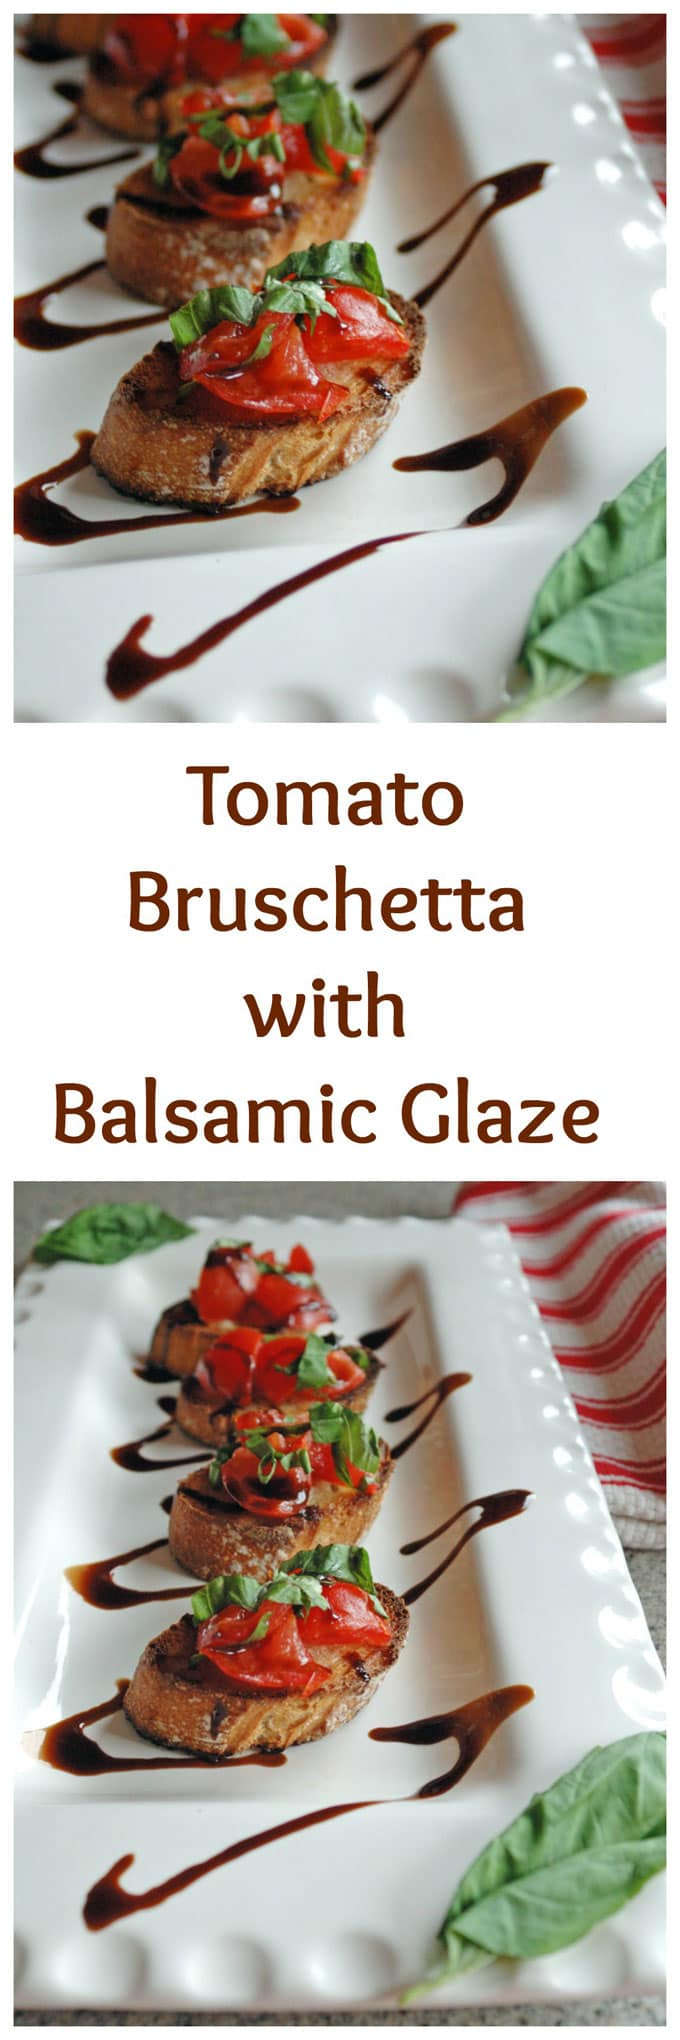 "the words ""Tomato Bruschetta with Balsamic Glaze\"" separating two photos of it"